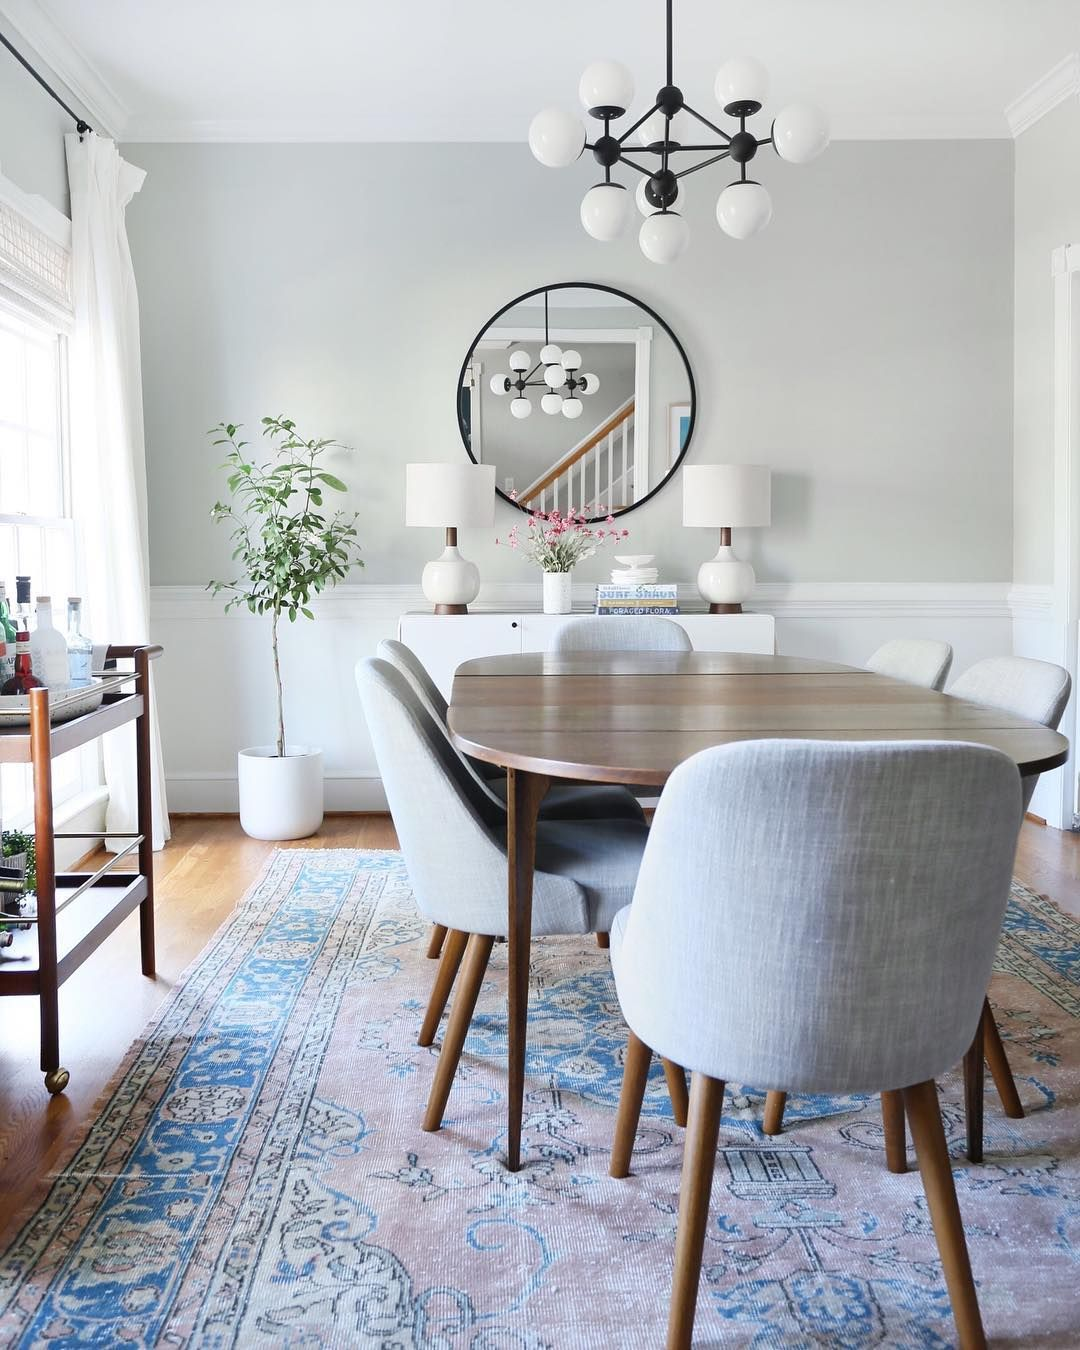 70 Modern Dining Room Ideas For 2019: Mid-century Modern Dining Room With Accents Of Blue In A